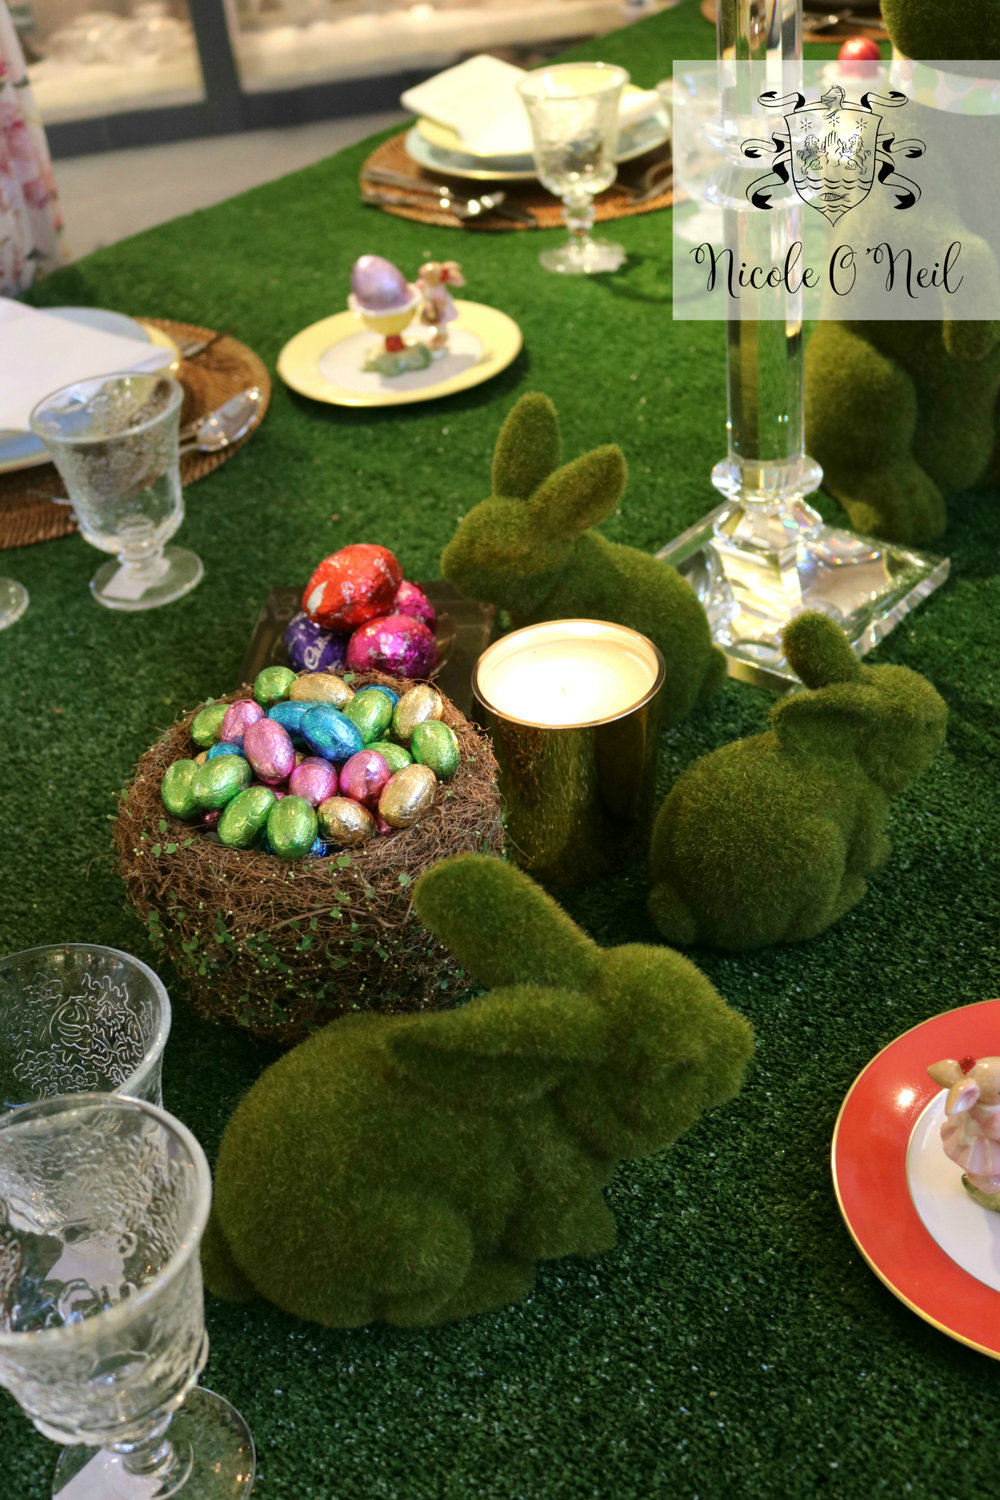 Moss Bunnies and Pastel Coloured Chocolate Easter Eggs - Easter Table Setting Inspiration - How to & How to Create the Perfect Easter Table Setting u2014 Nicole Ou0027Neil ...